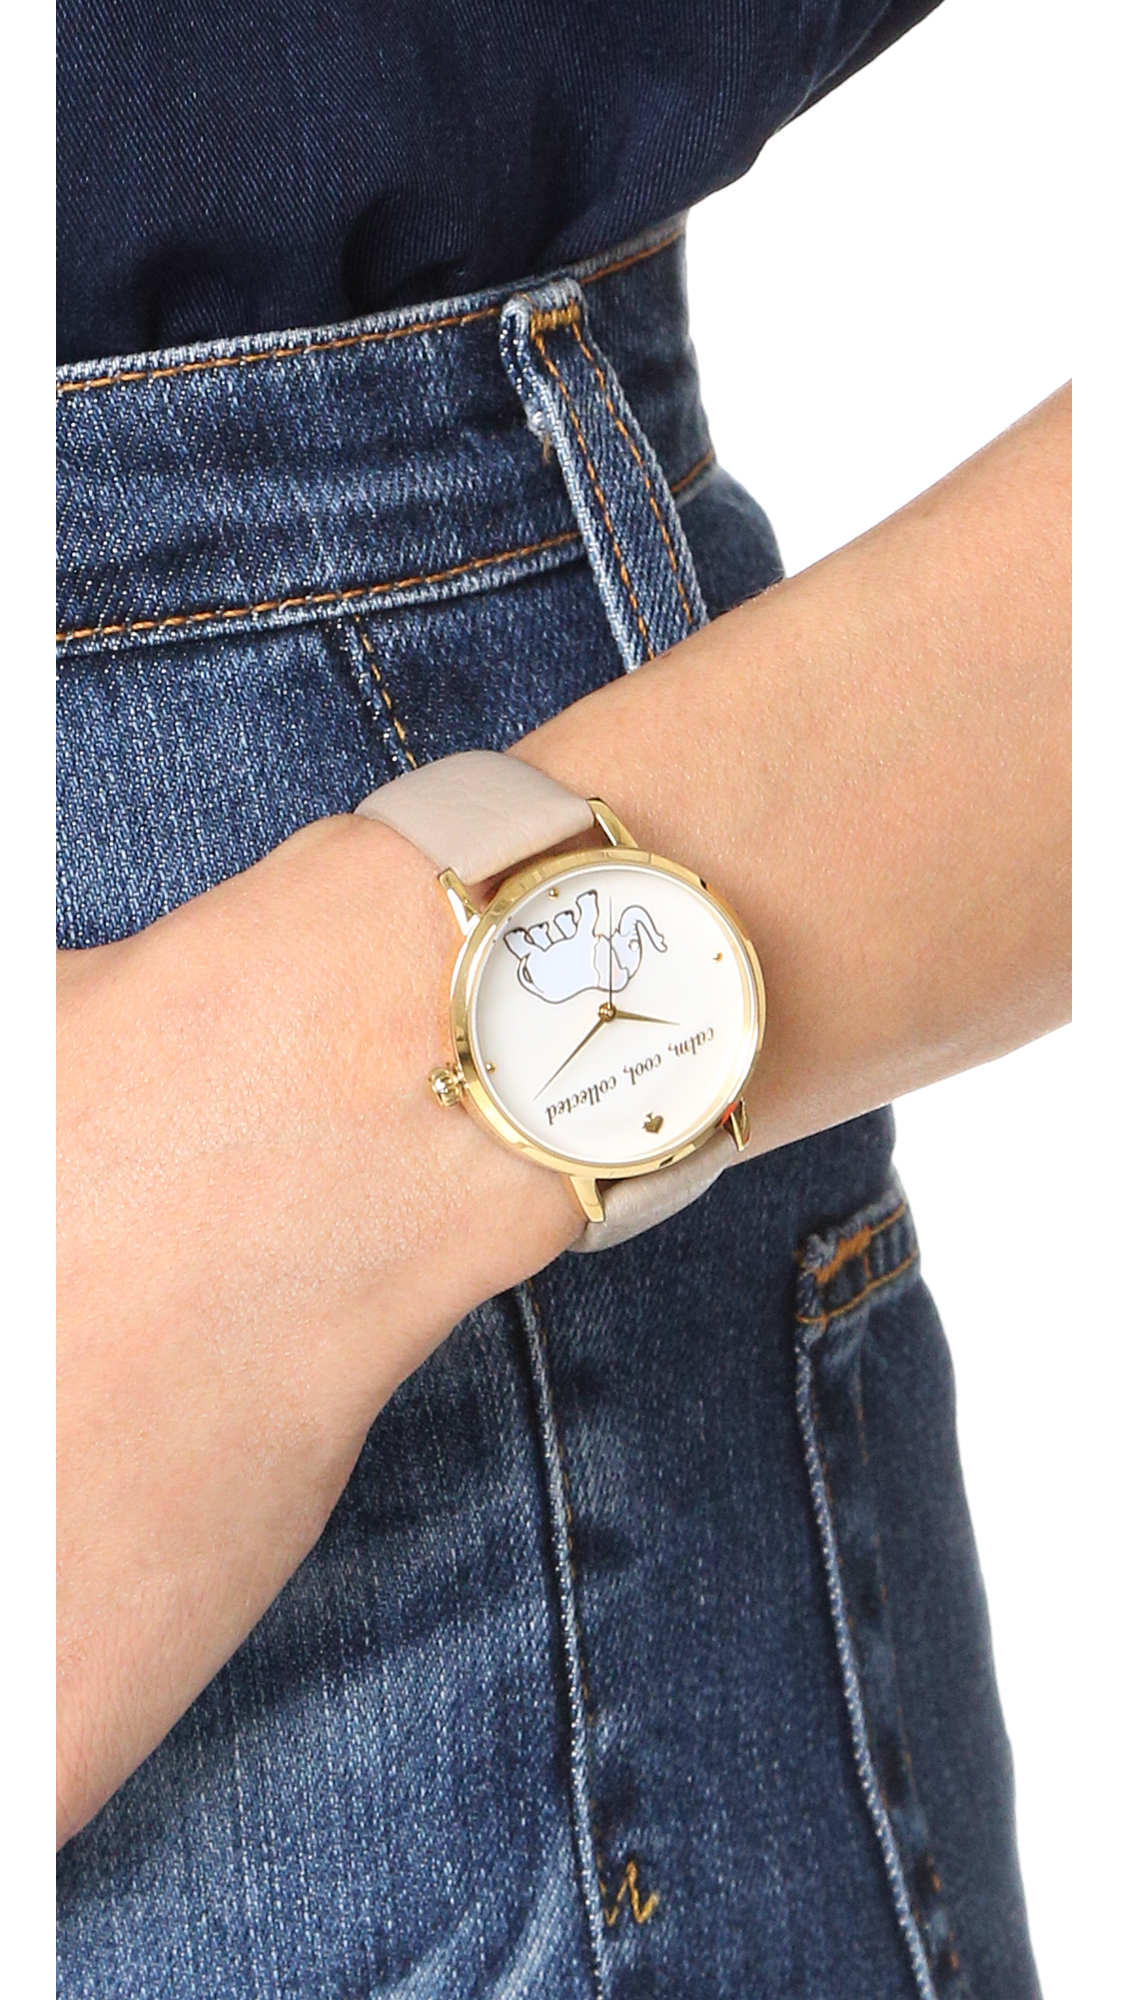 Kate Spade New York Metro Calm Cool Collected Watch Shopbop